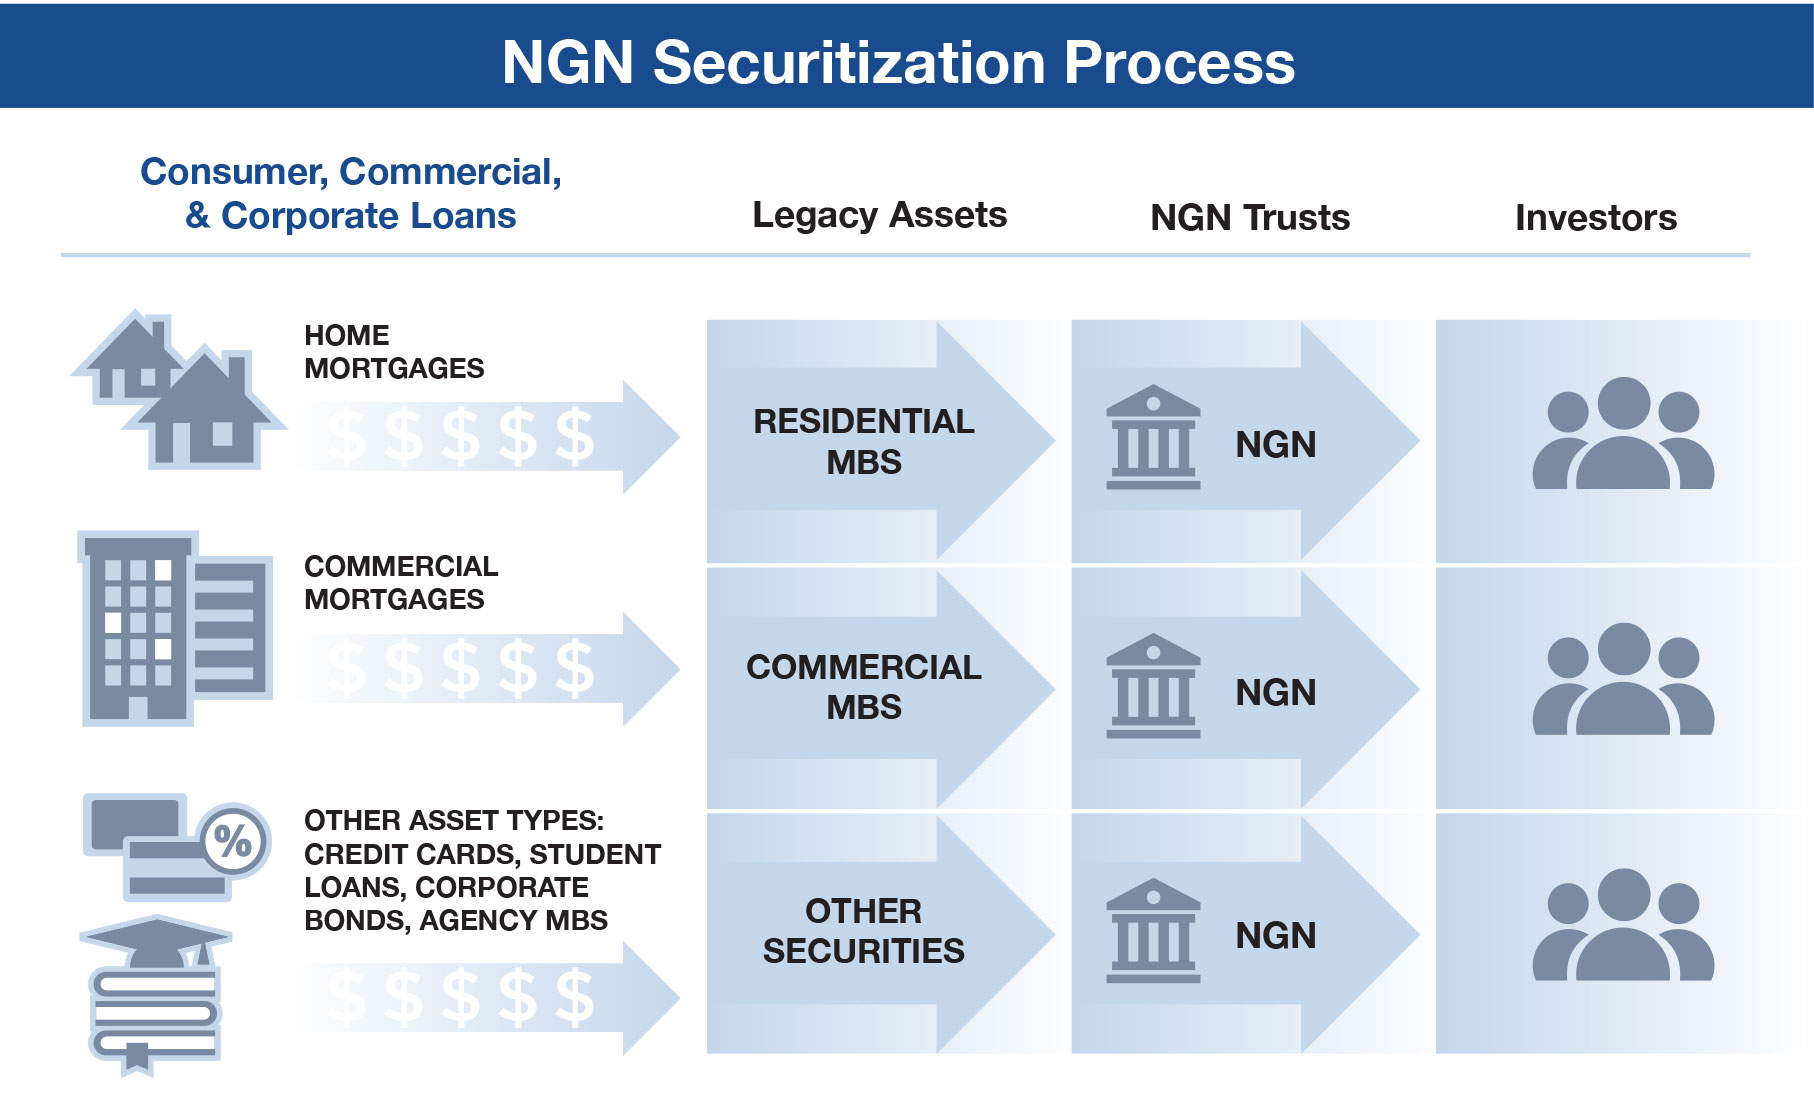 NGN Securitization Process